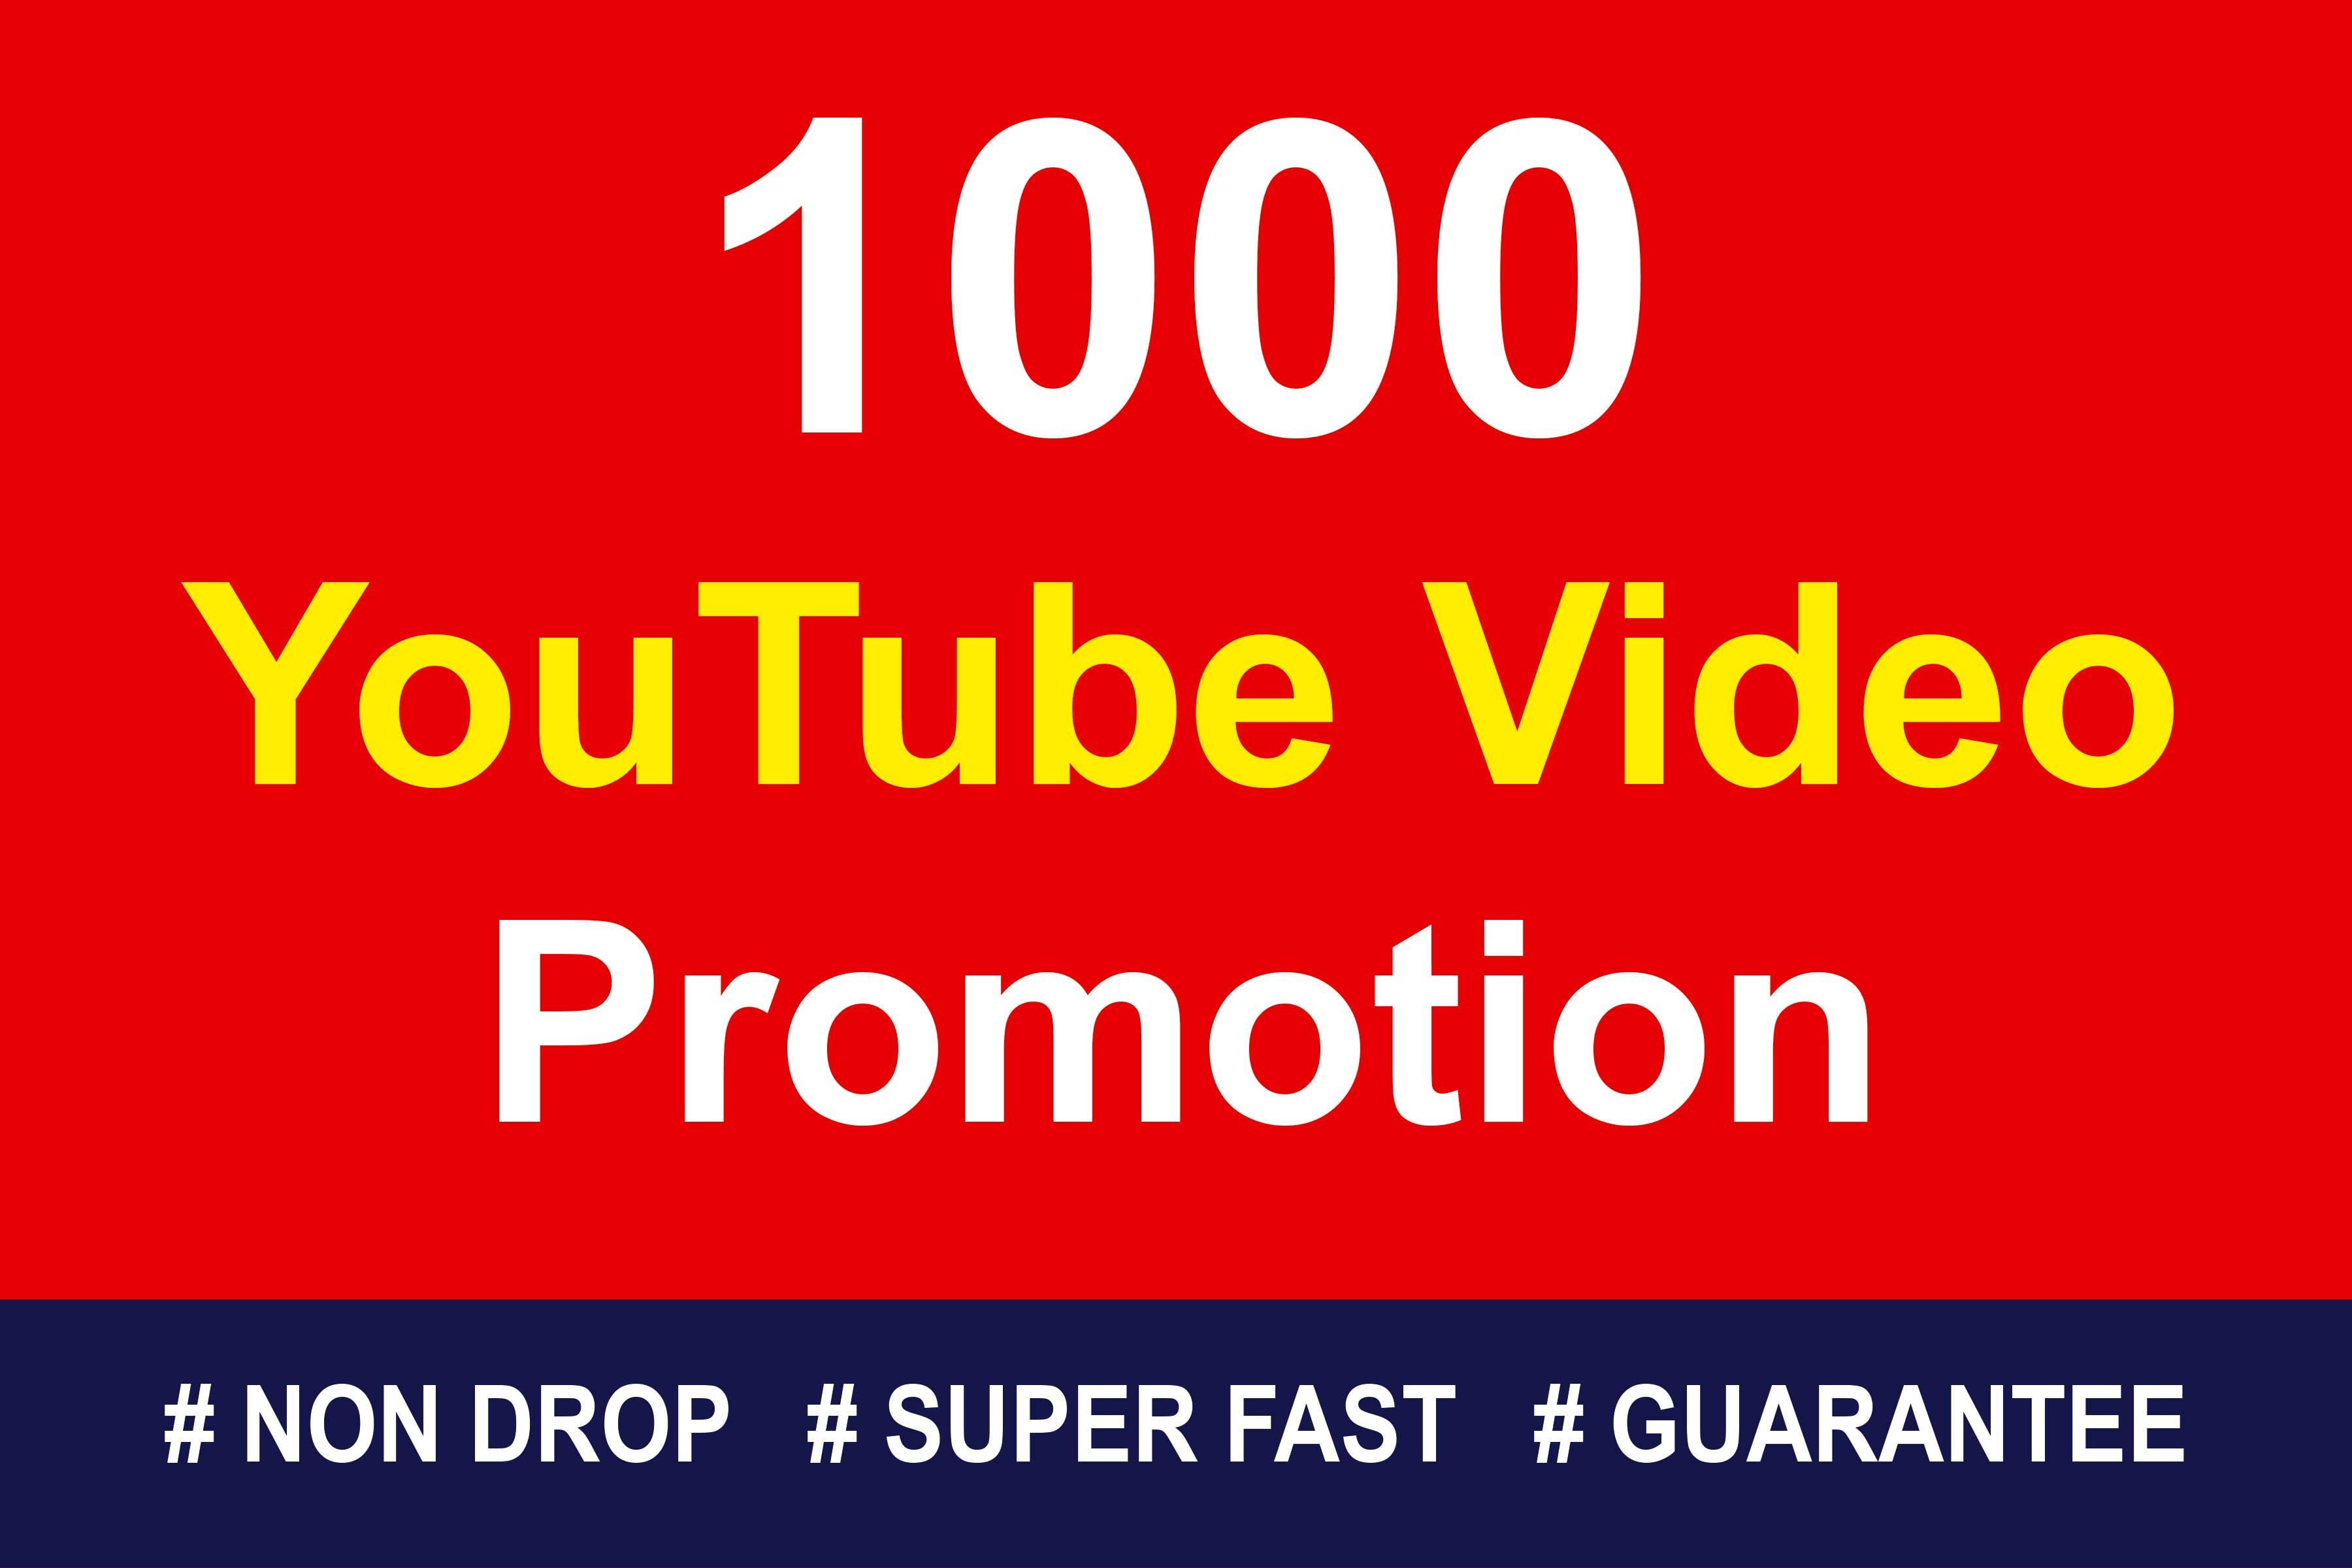 Organic High Quality YouTube Video Promotions 7 hrs Delivery